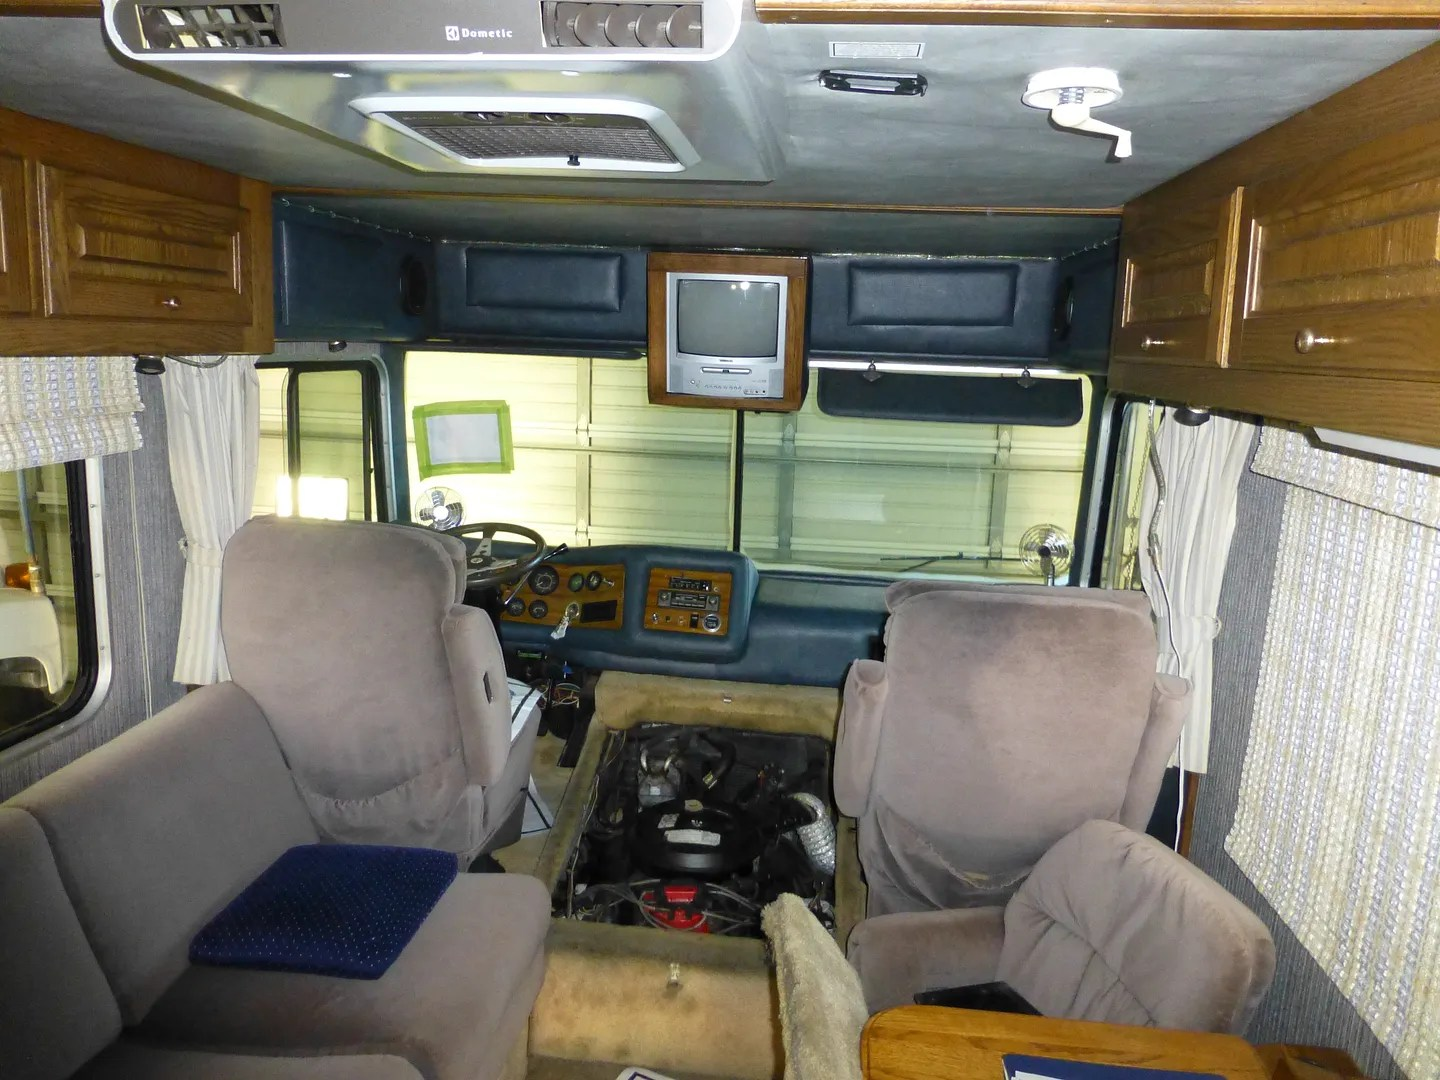 hight resolution of chevrolet p 32 motorhome engine diagram wiring library 85 barth regal 28 454 chevy